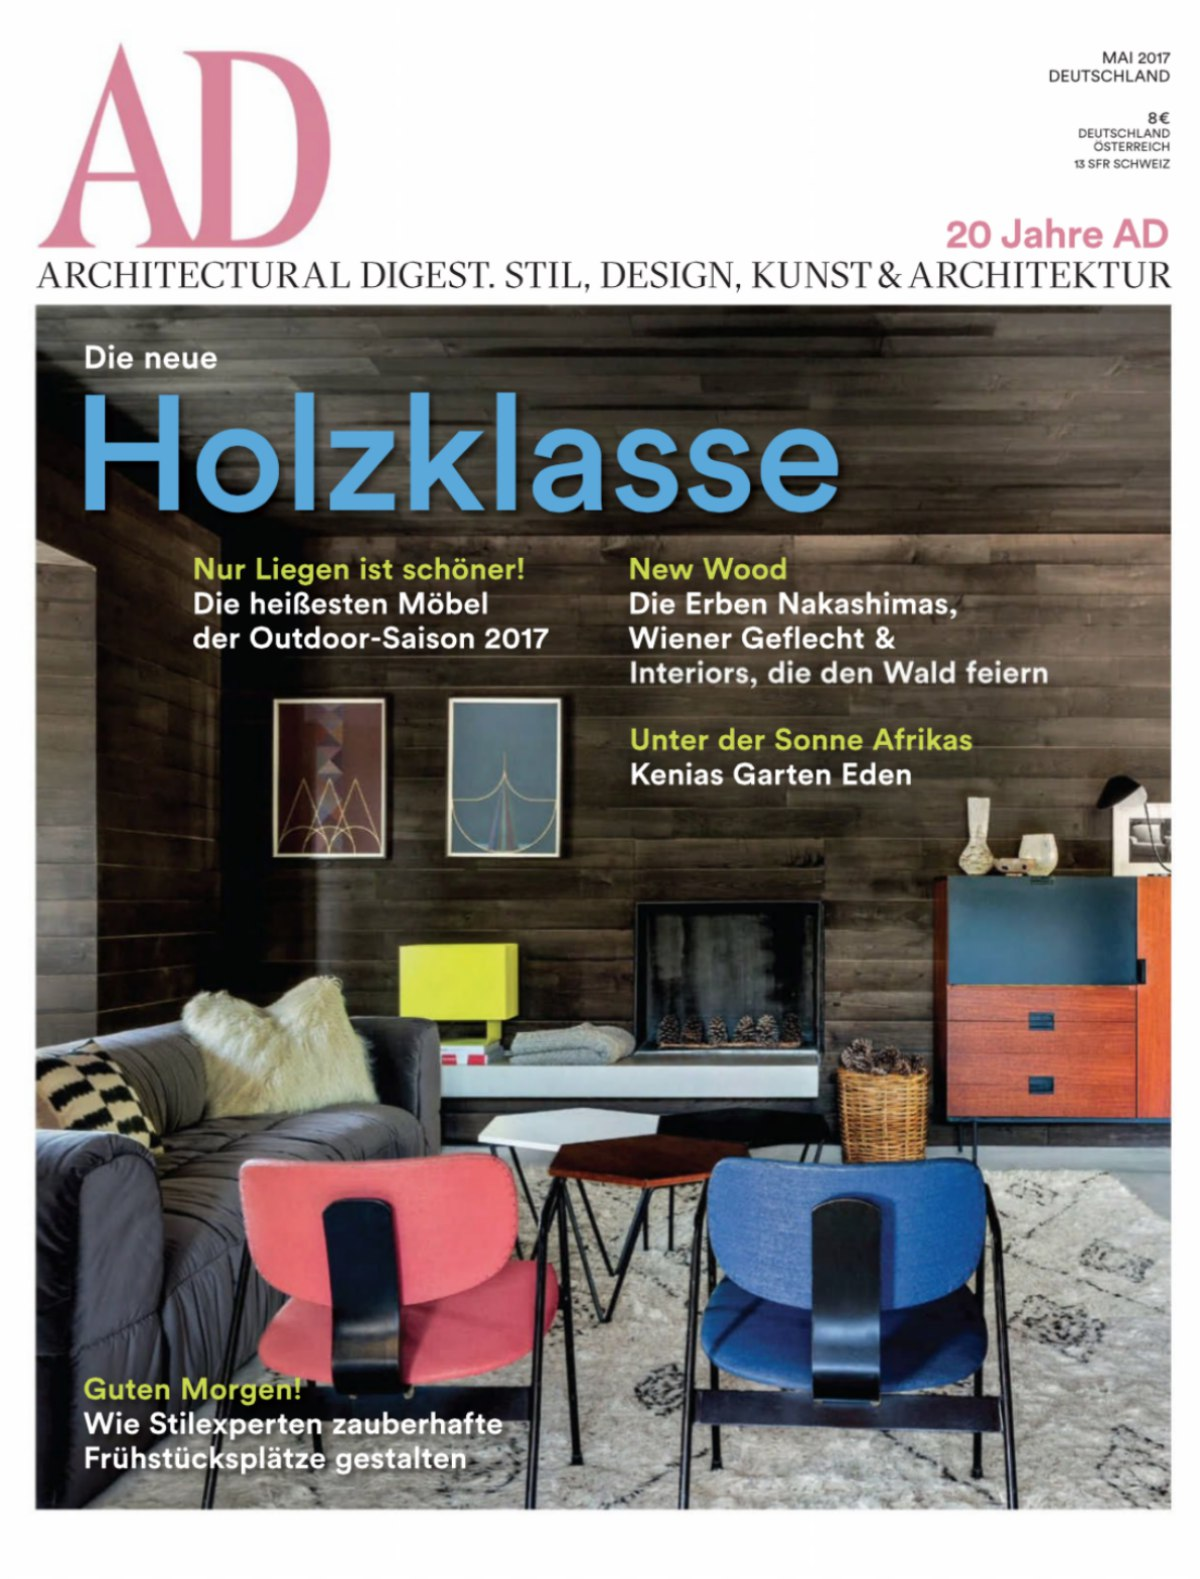 AD GERMANY MAY 2017